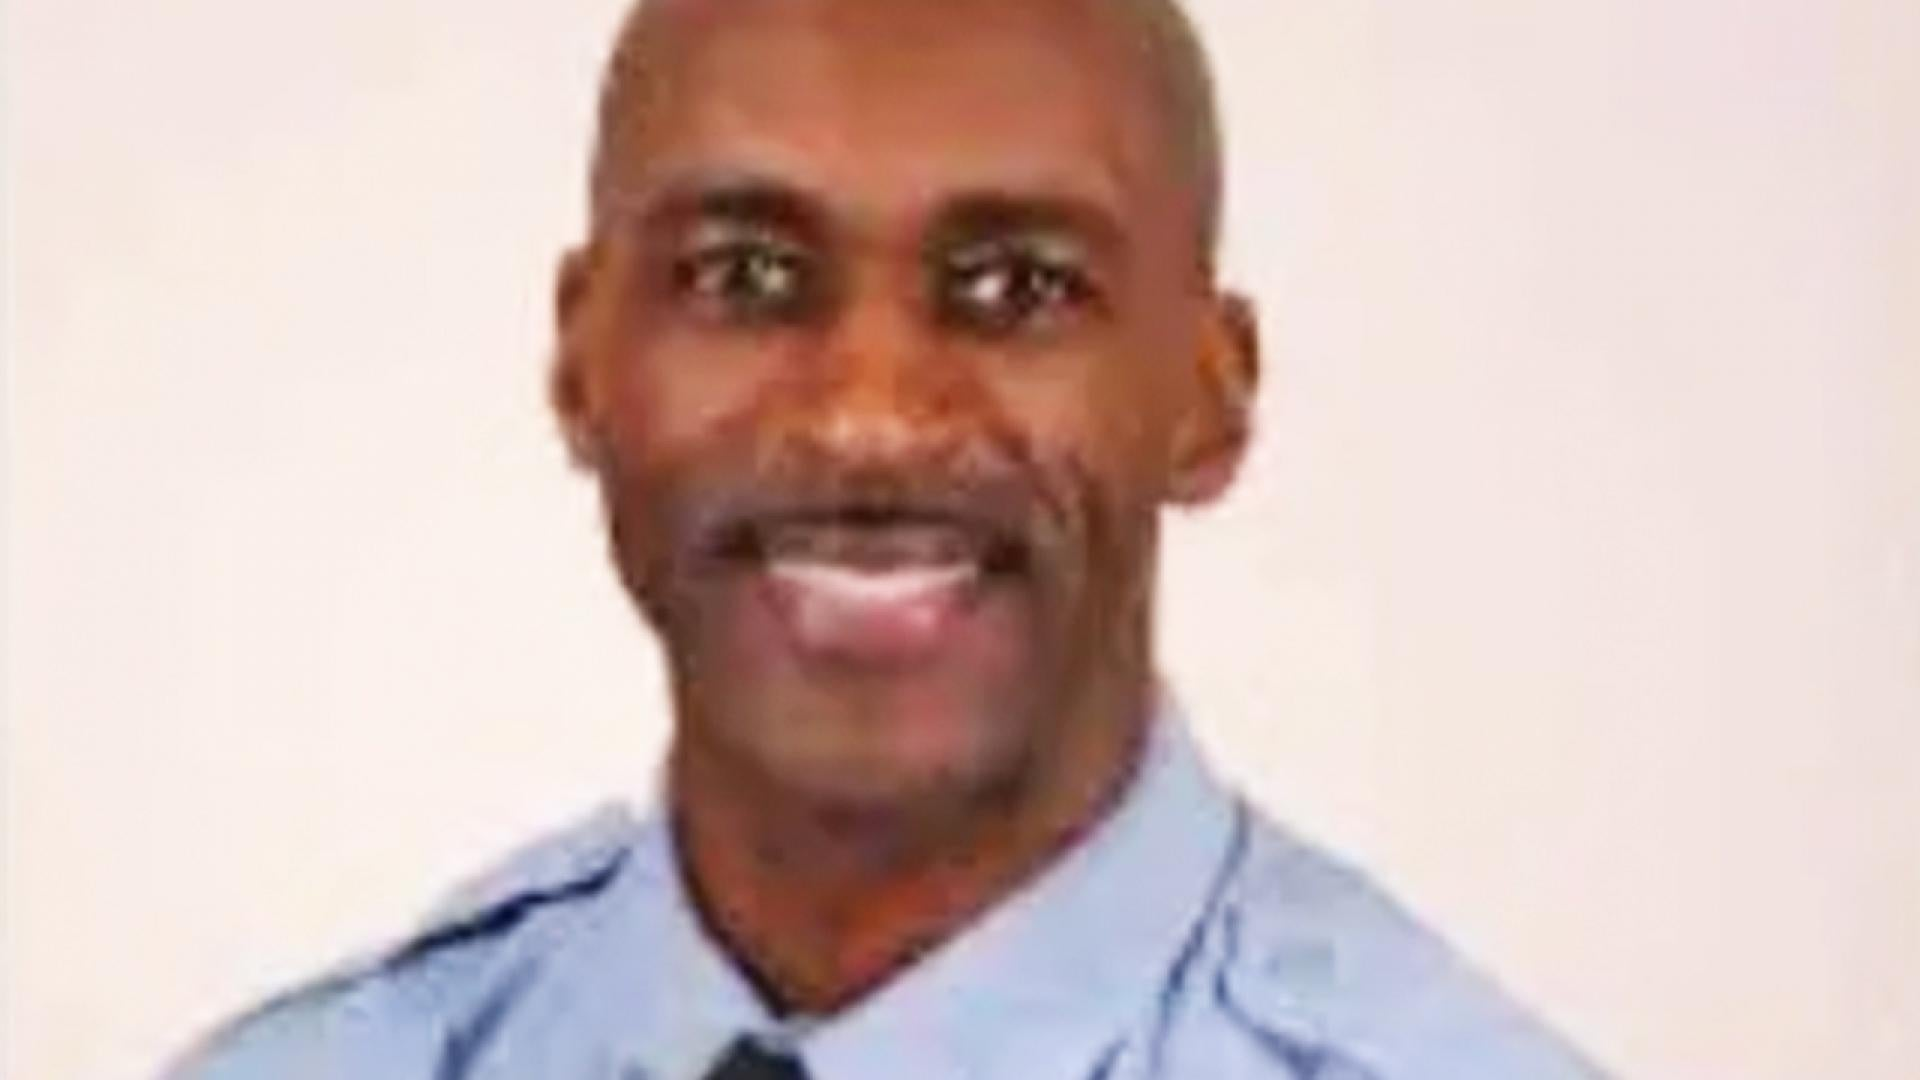 Detroit Fire Sgt. Sivad Johnson had been with the fire department for 26 years.